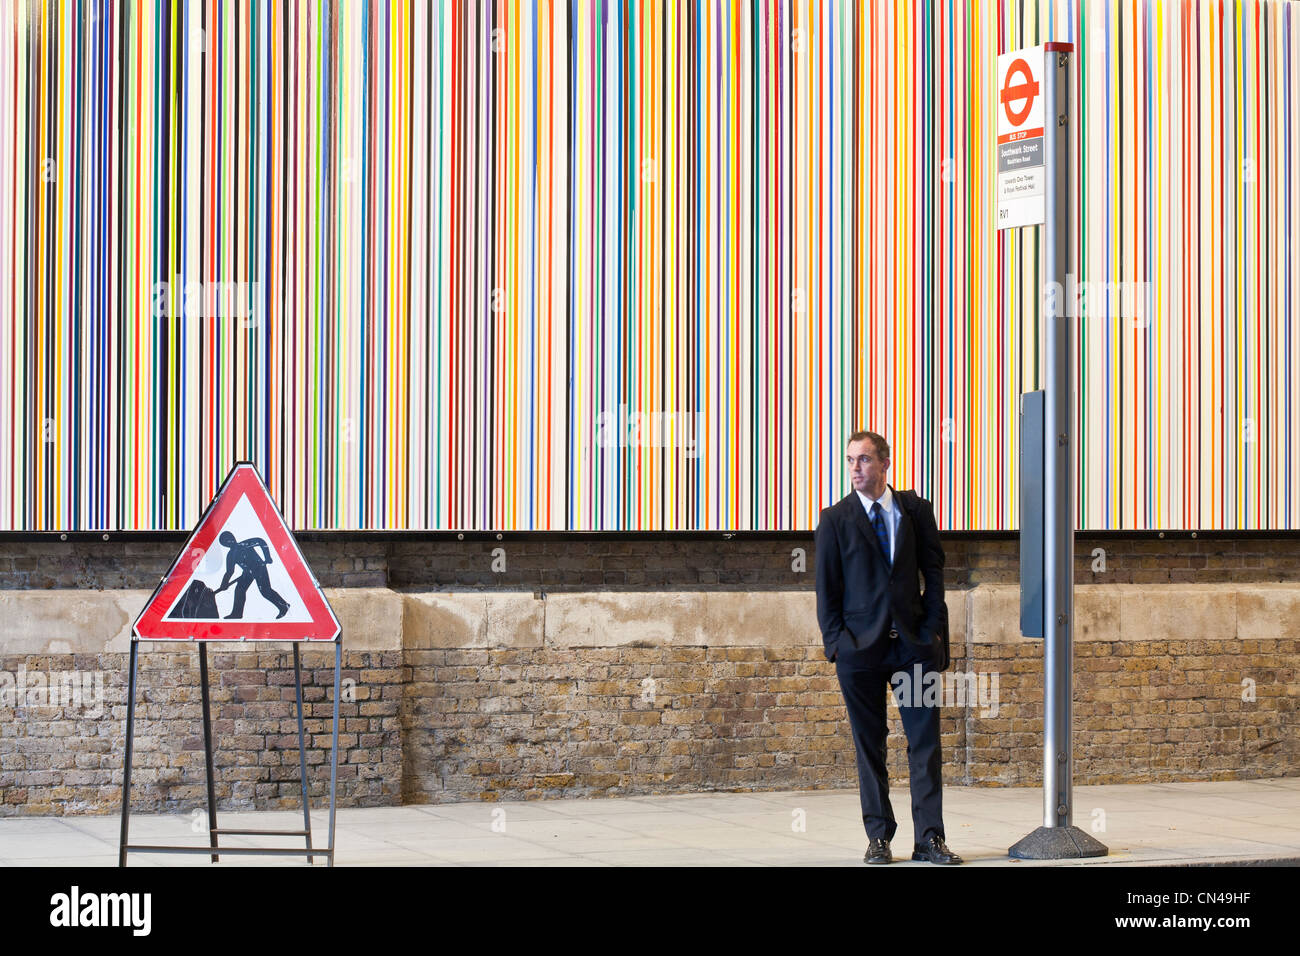 United Kingdom, London, Southwark, Bankside, bus stop in front of artwork called Poured Lines by artist Ian Davenport - Stock Image